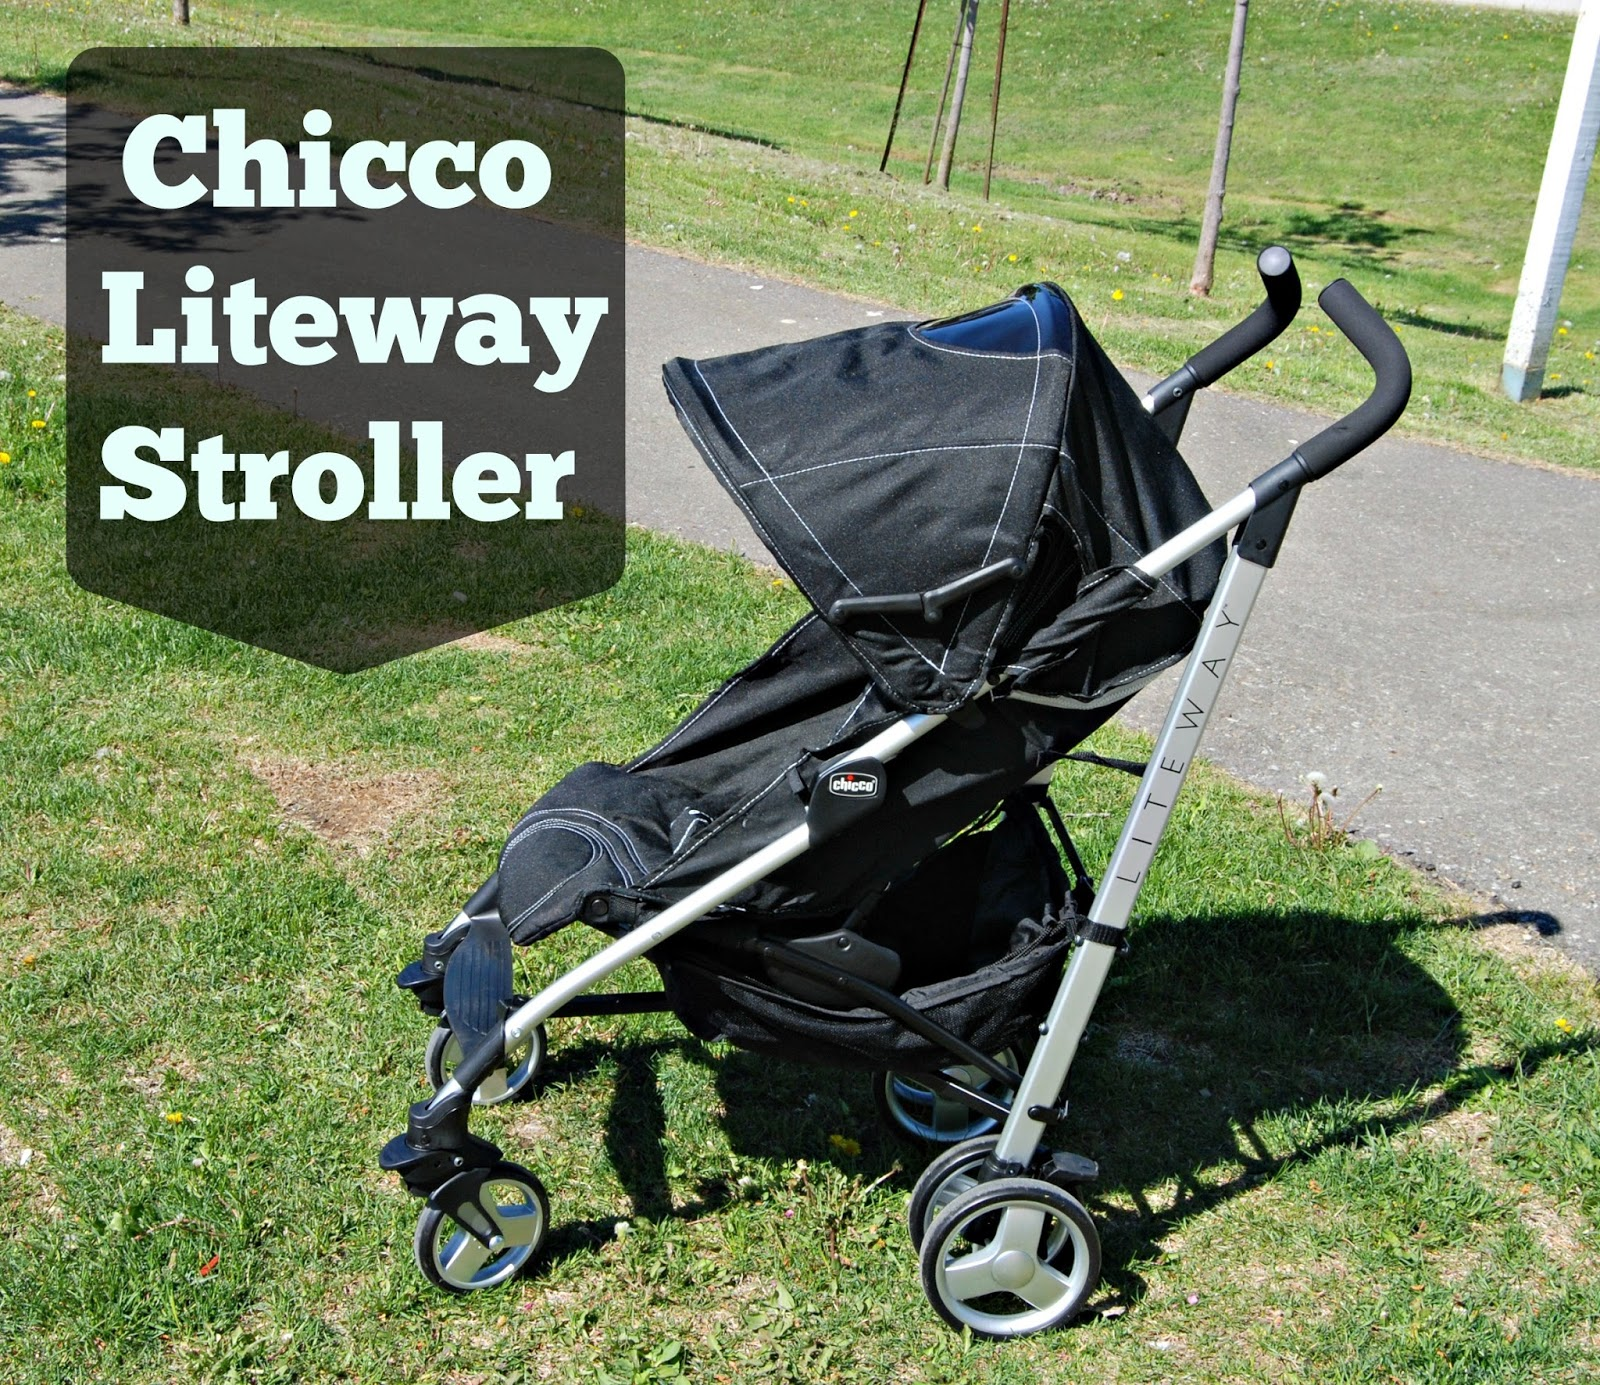 When I was given the option of reviewing the Chicco Liteway Stroller I thought it would be the perfect fit for us. Since I was looking for a compact ... & The Chicco Liteway Stroller Makes Being on The Go Easier #GIVEAWAY ...